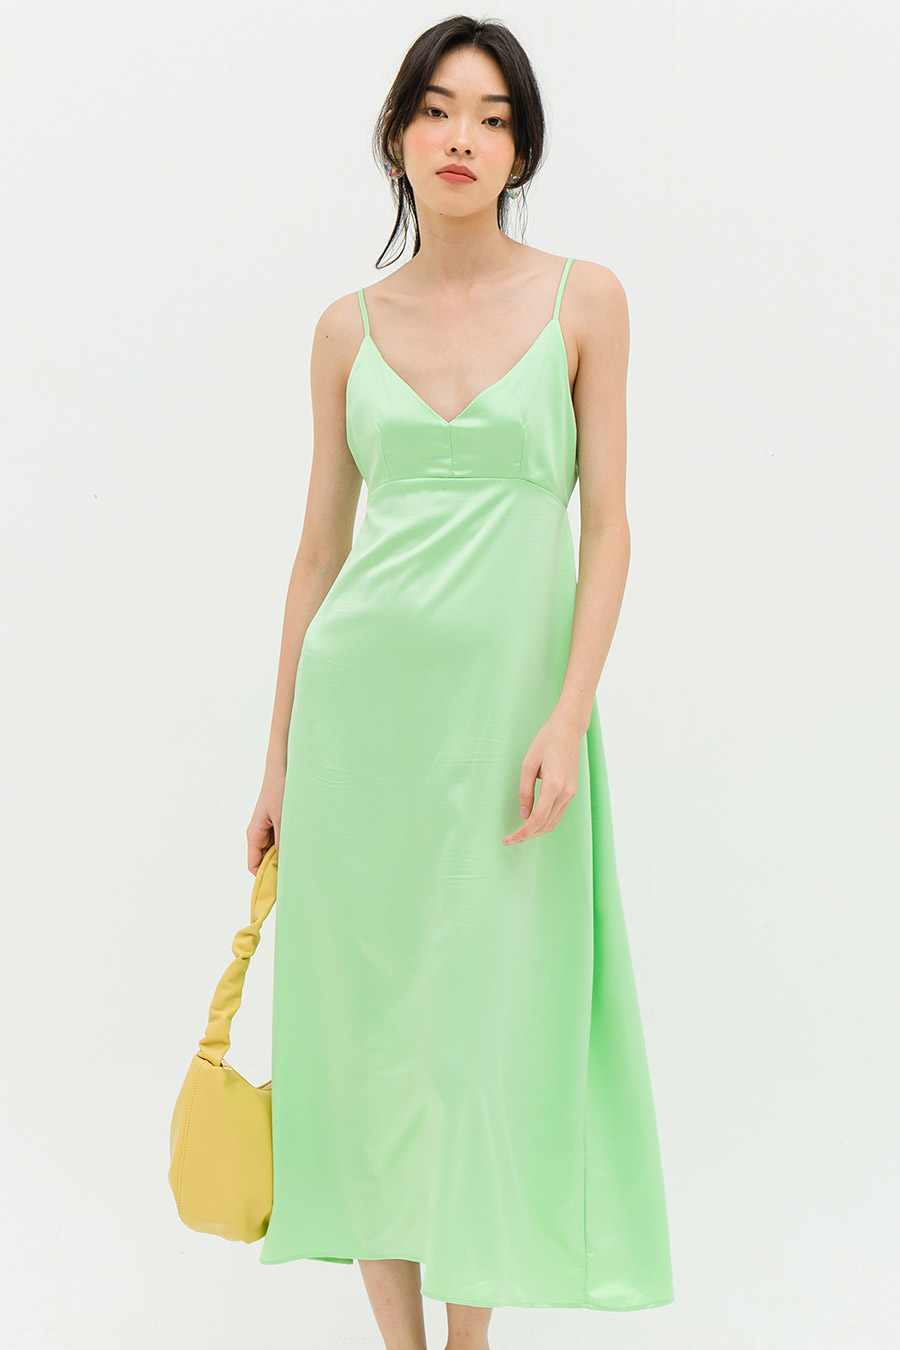 *SALE* JOEL DRESS - MINT